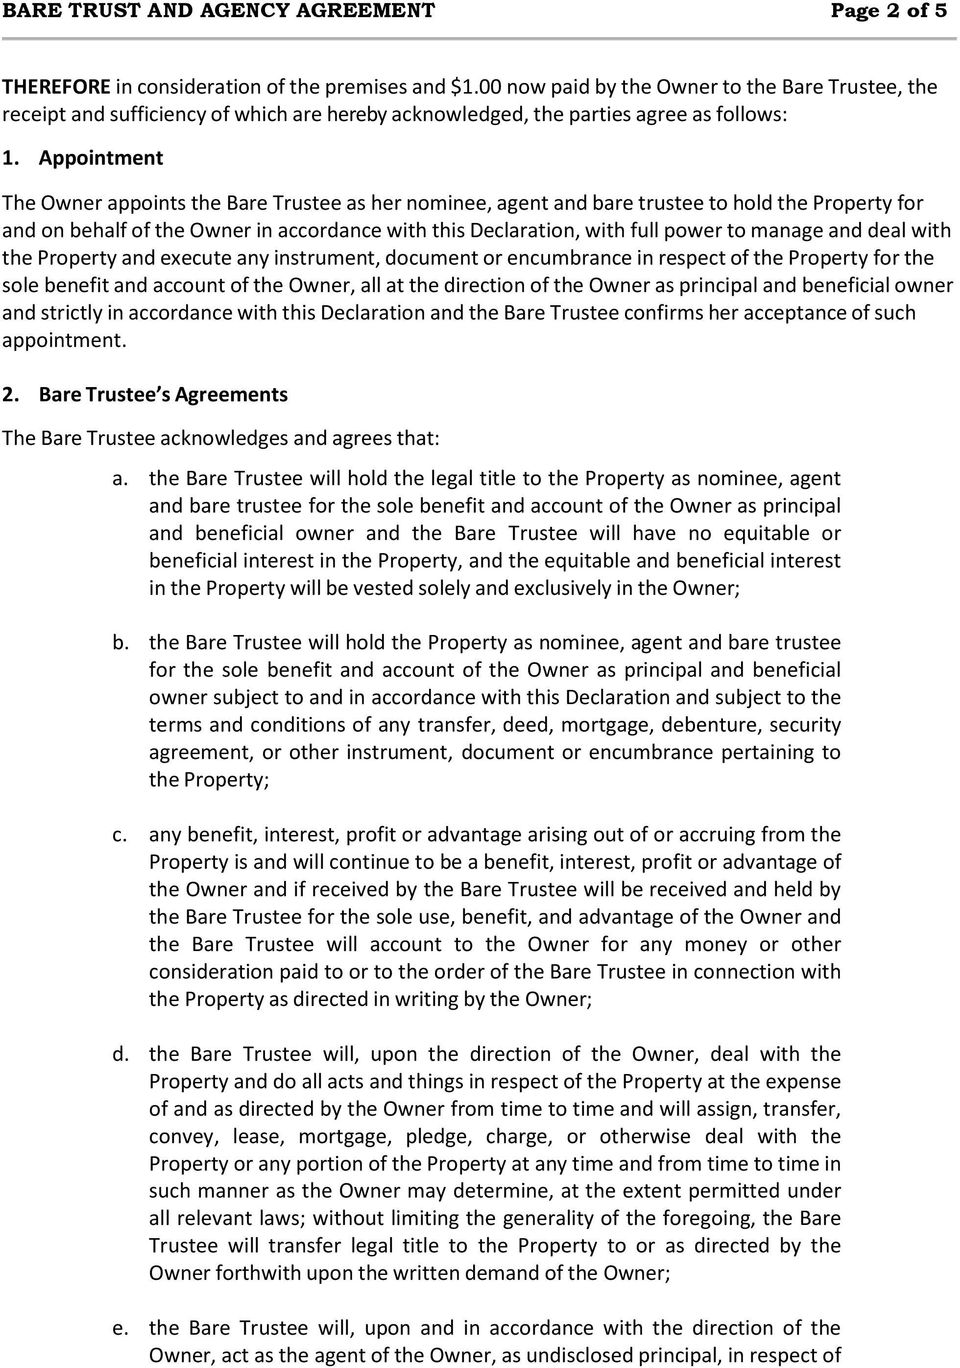 mortgage under transfer of property act pdf